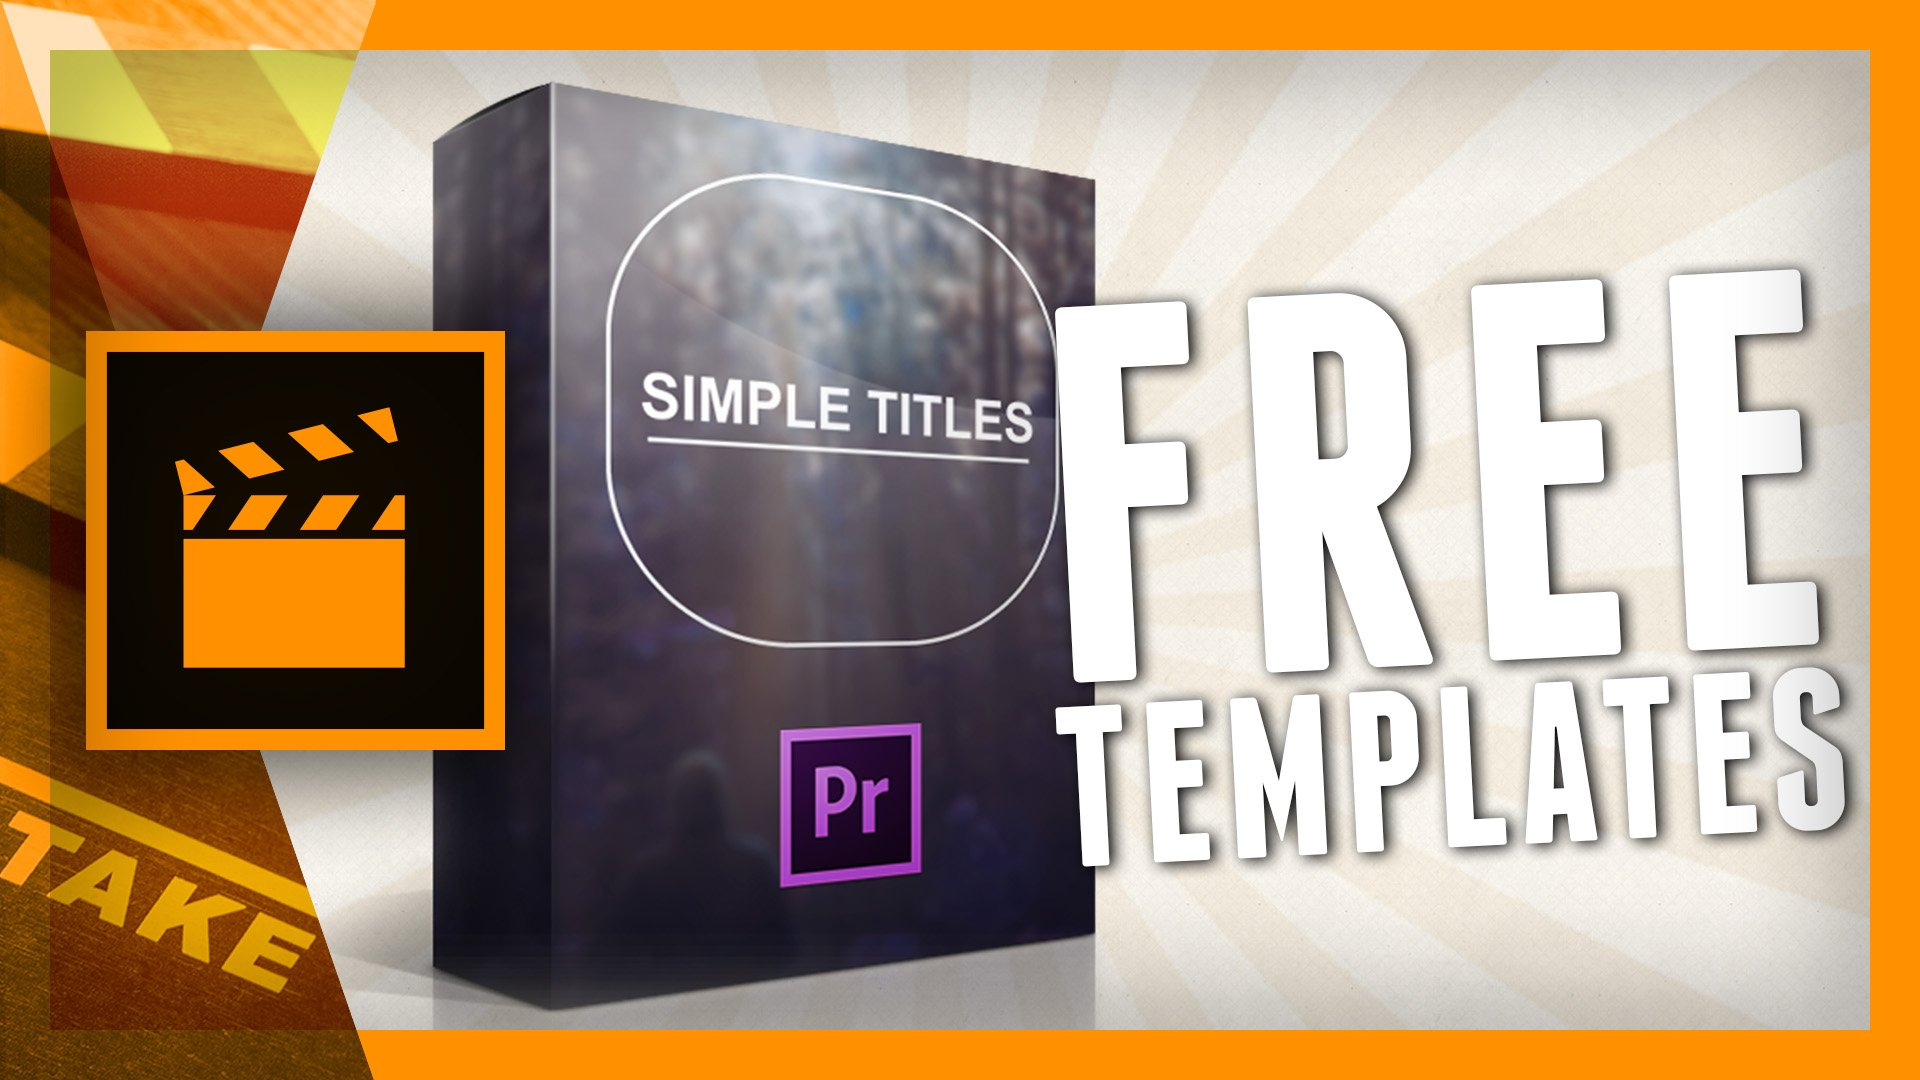 Simple Titles is available for Premiere Pro CS6 | Cinecom.net